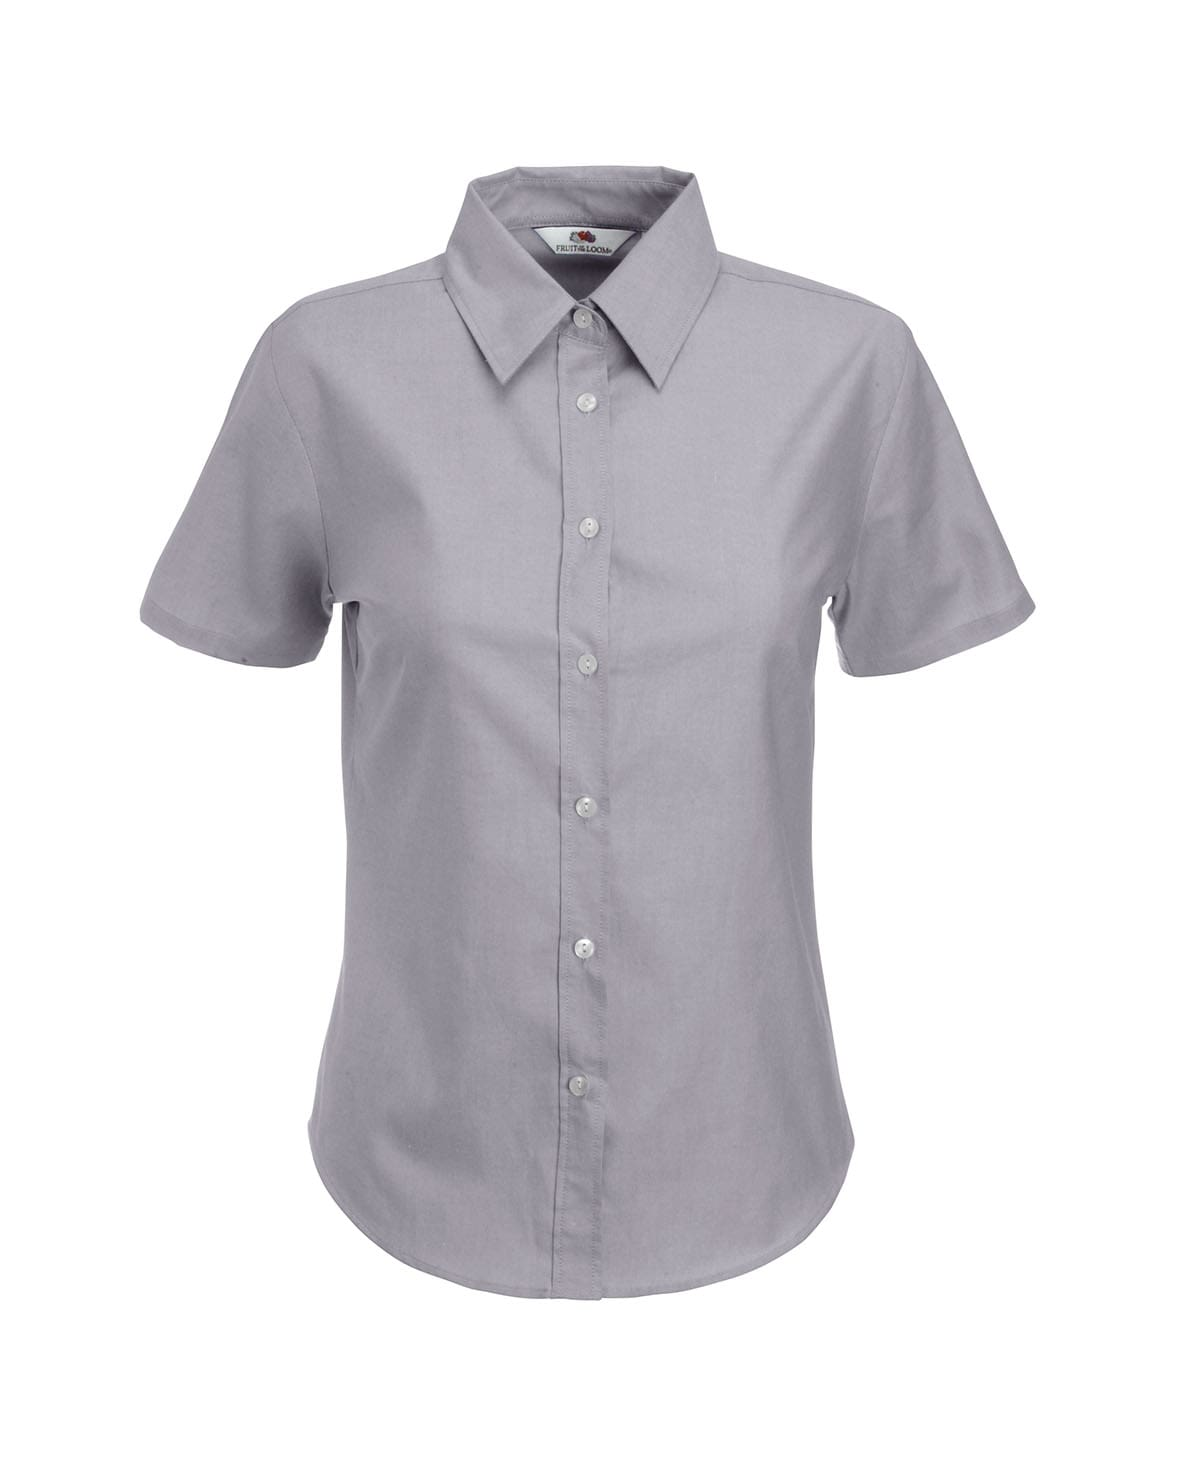 Workwear Blouses both Smart and Casual that can be Branded with Company Logo giving you a Professional Look